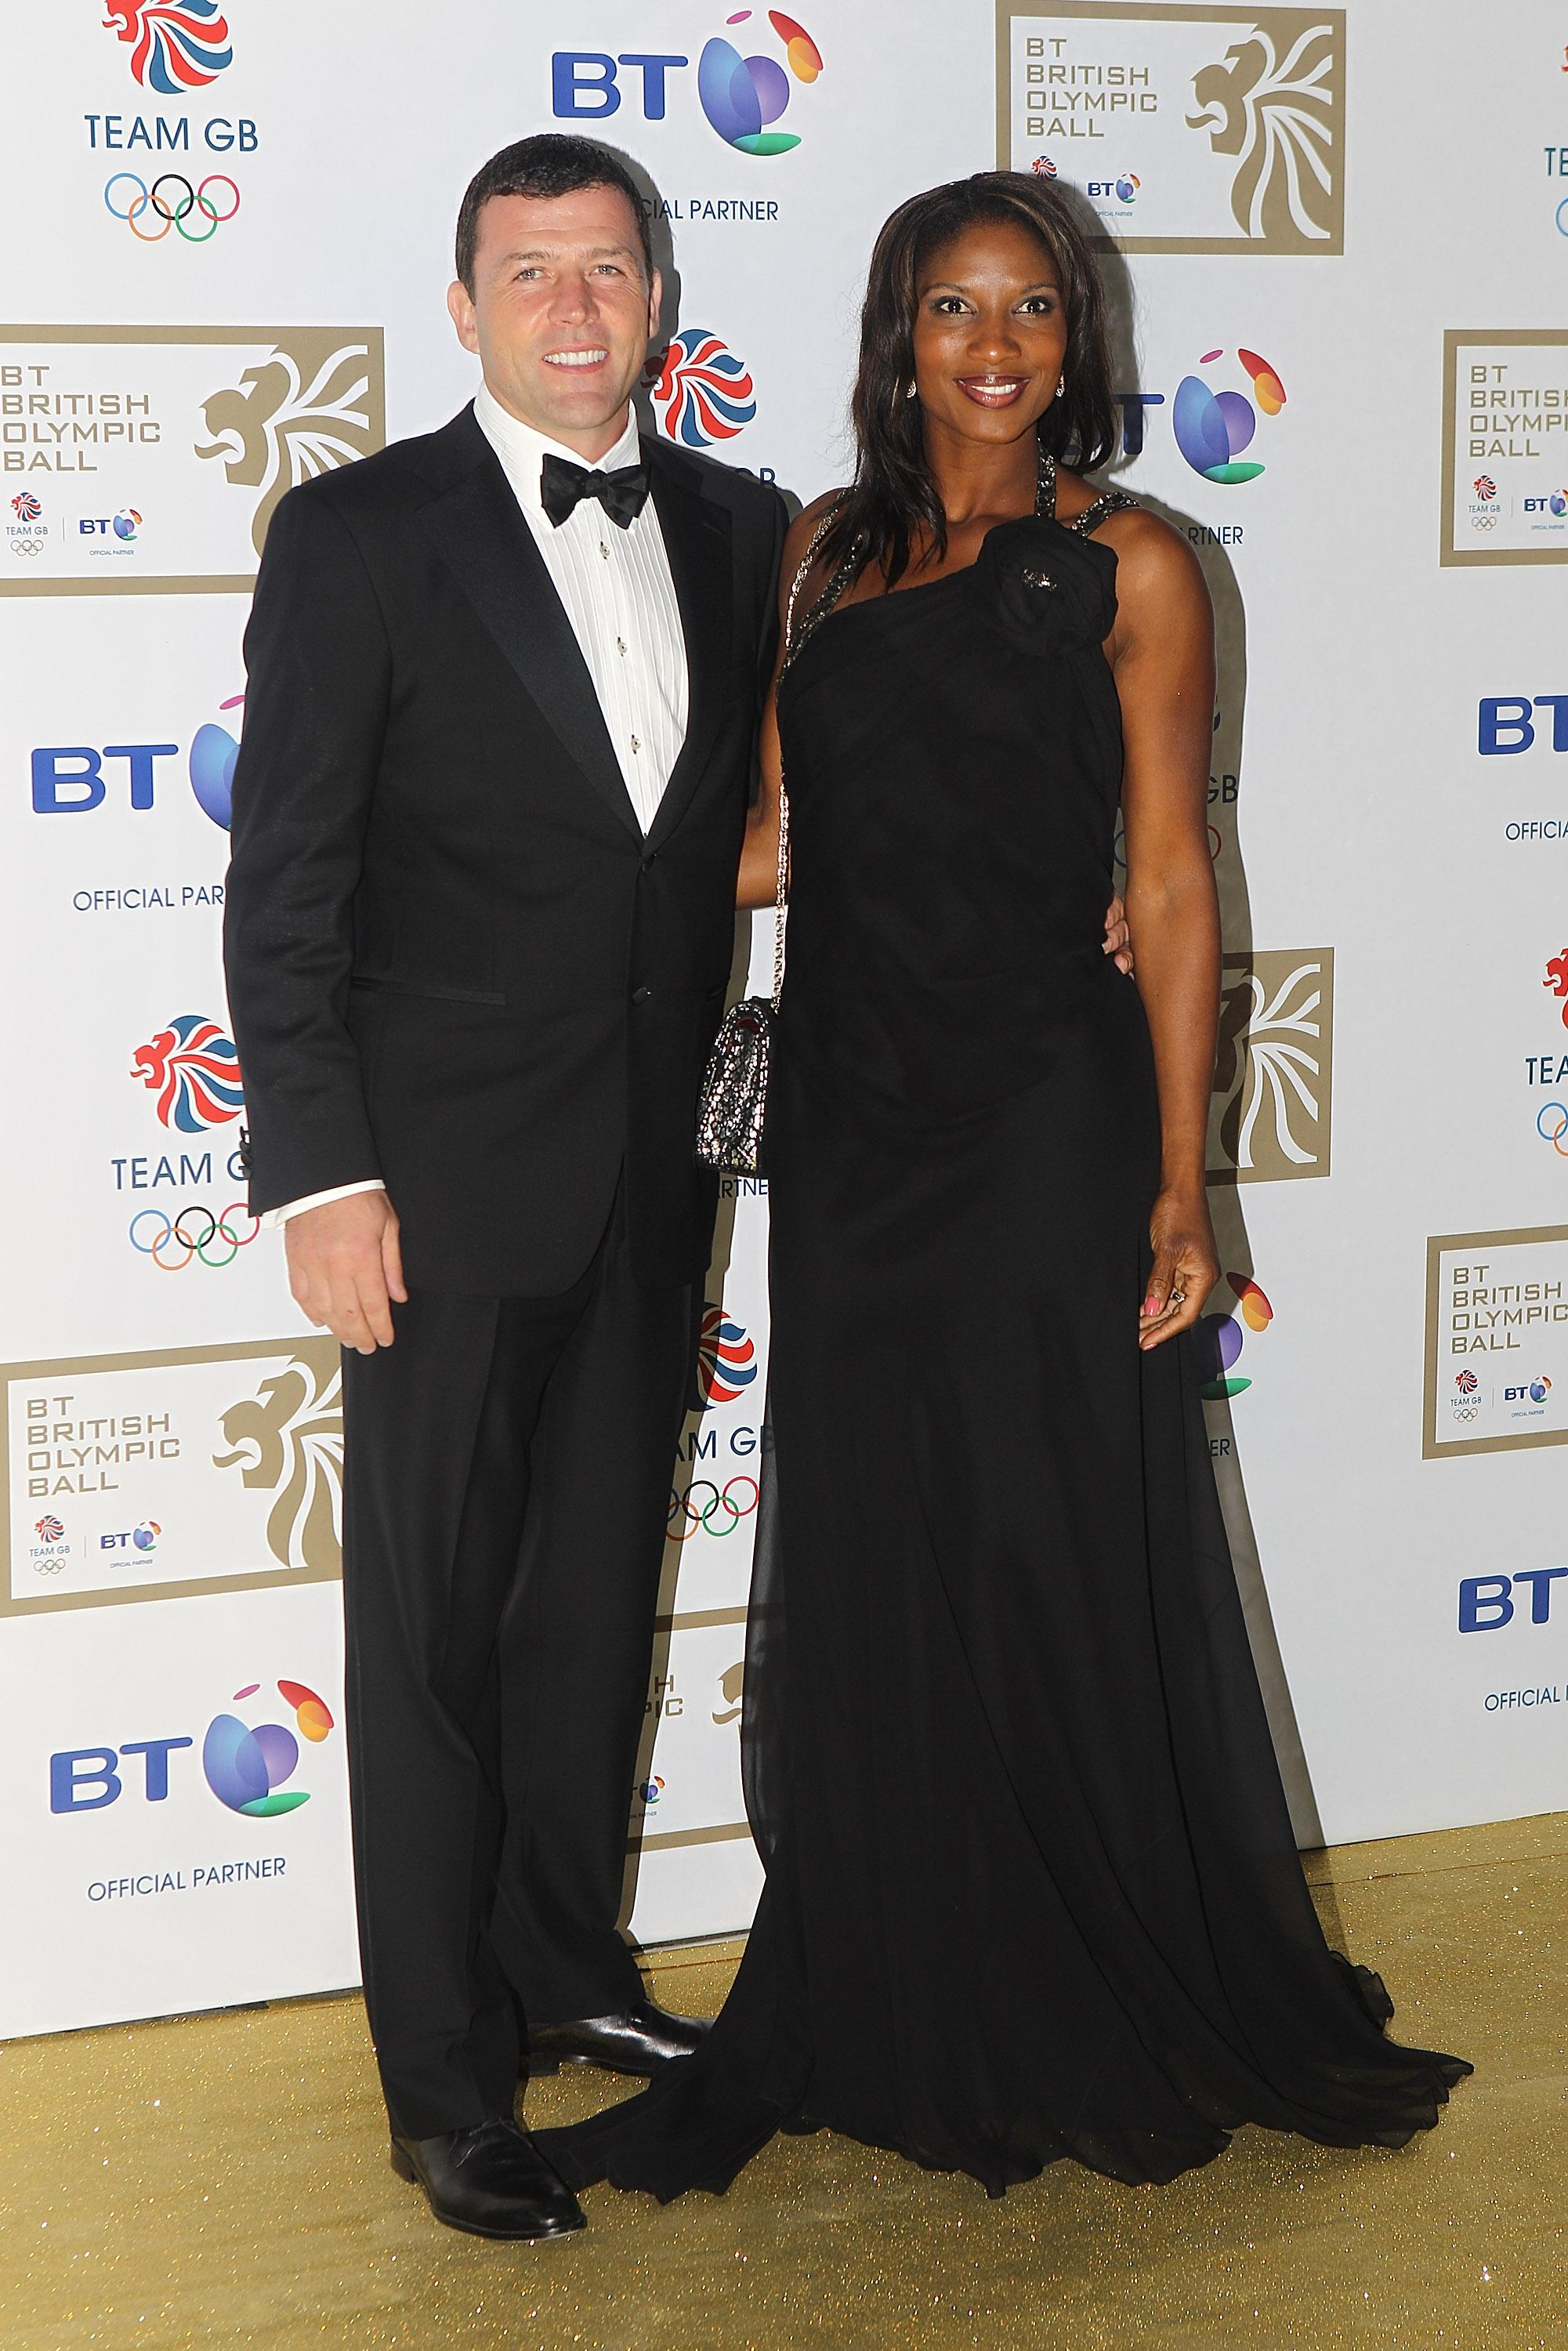 Denise Lewis and husband Steve Finan O'Connor are expecting their fourth child